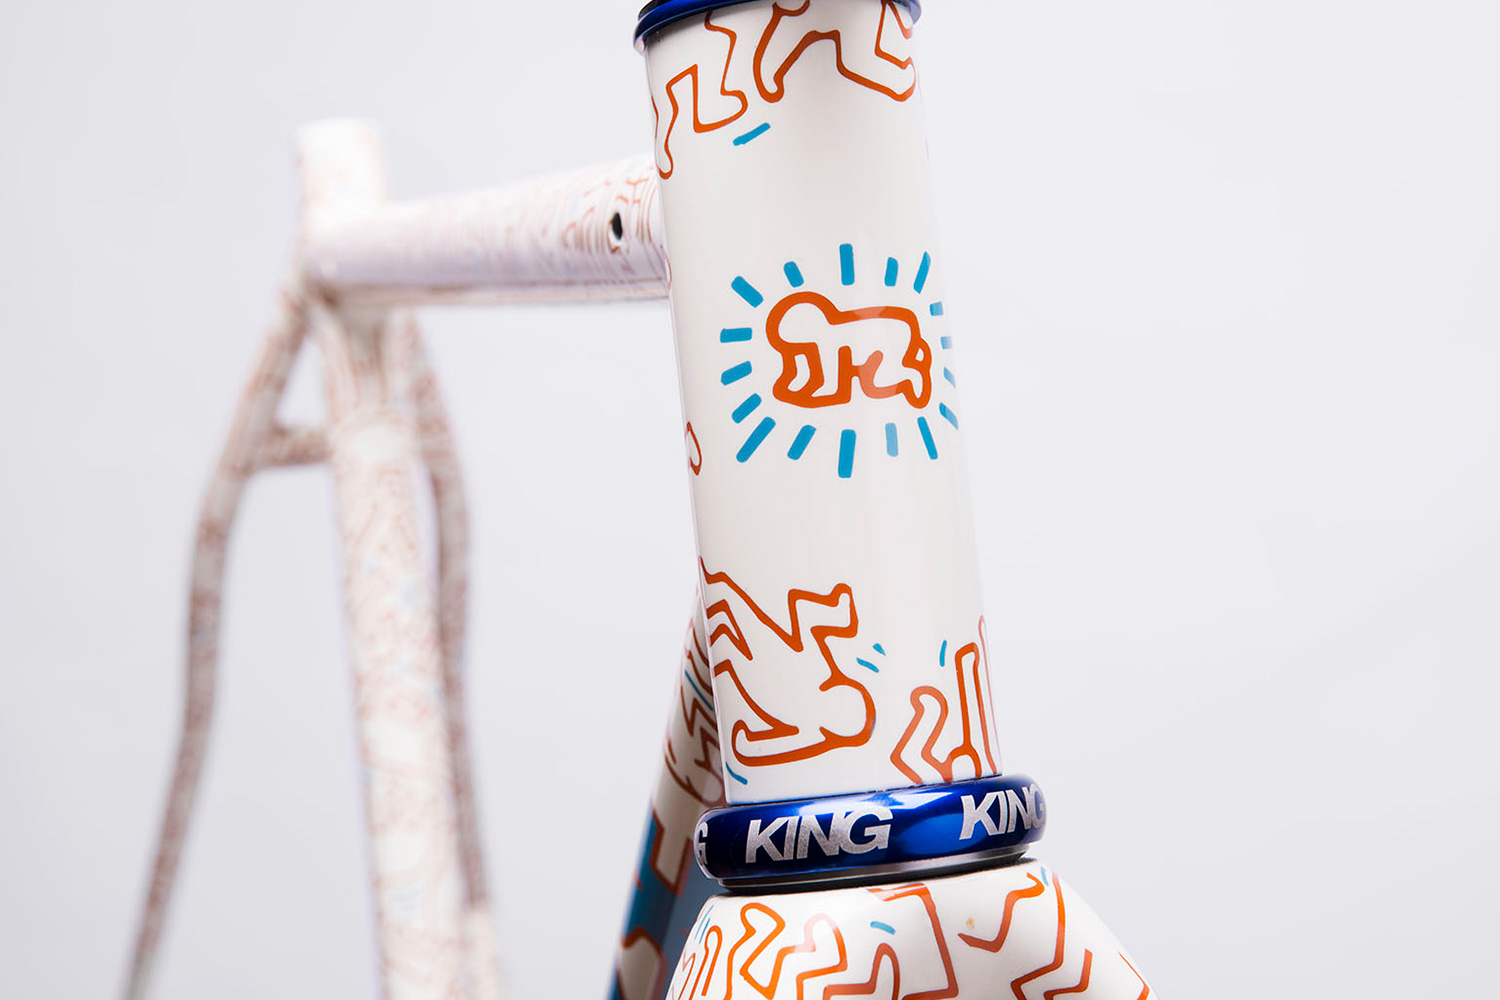 coarse-fabrication-keith-haring-cyclocross-frame-02.jpg